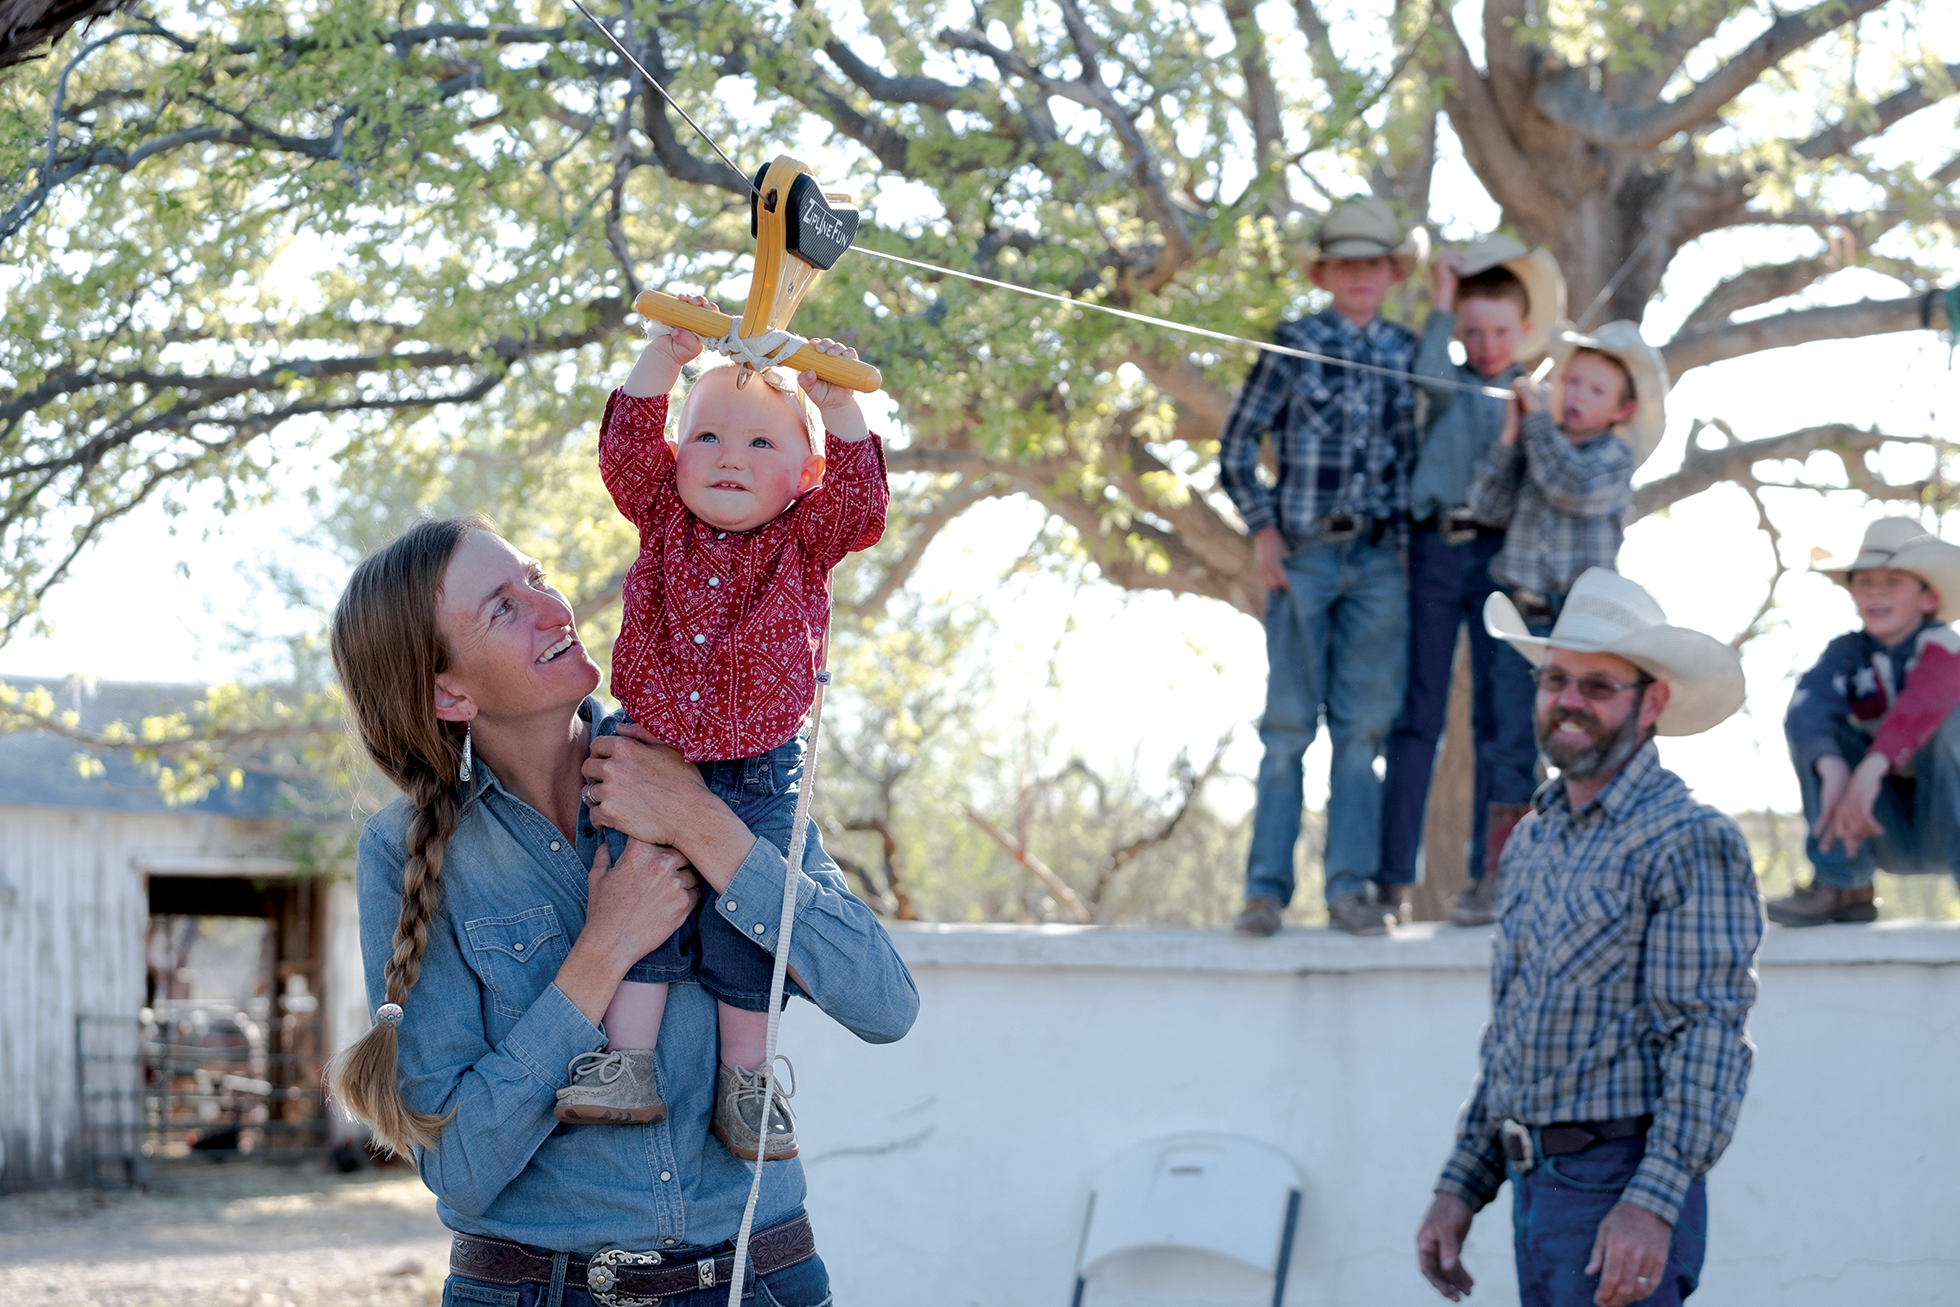 Mellard and her daughter, Dalleigh, play outside at the ranch where Dalleigh was born.